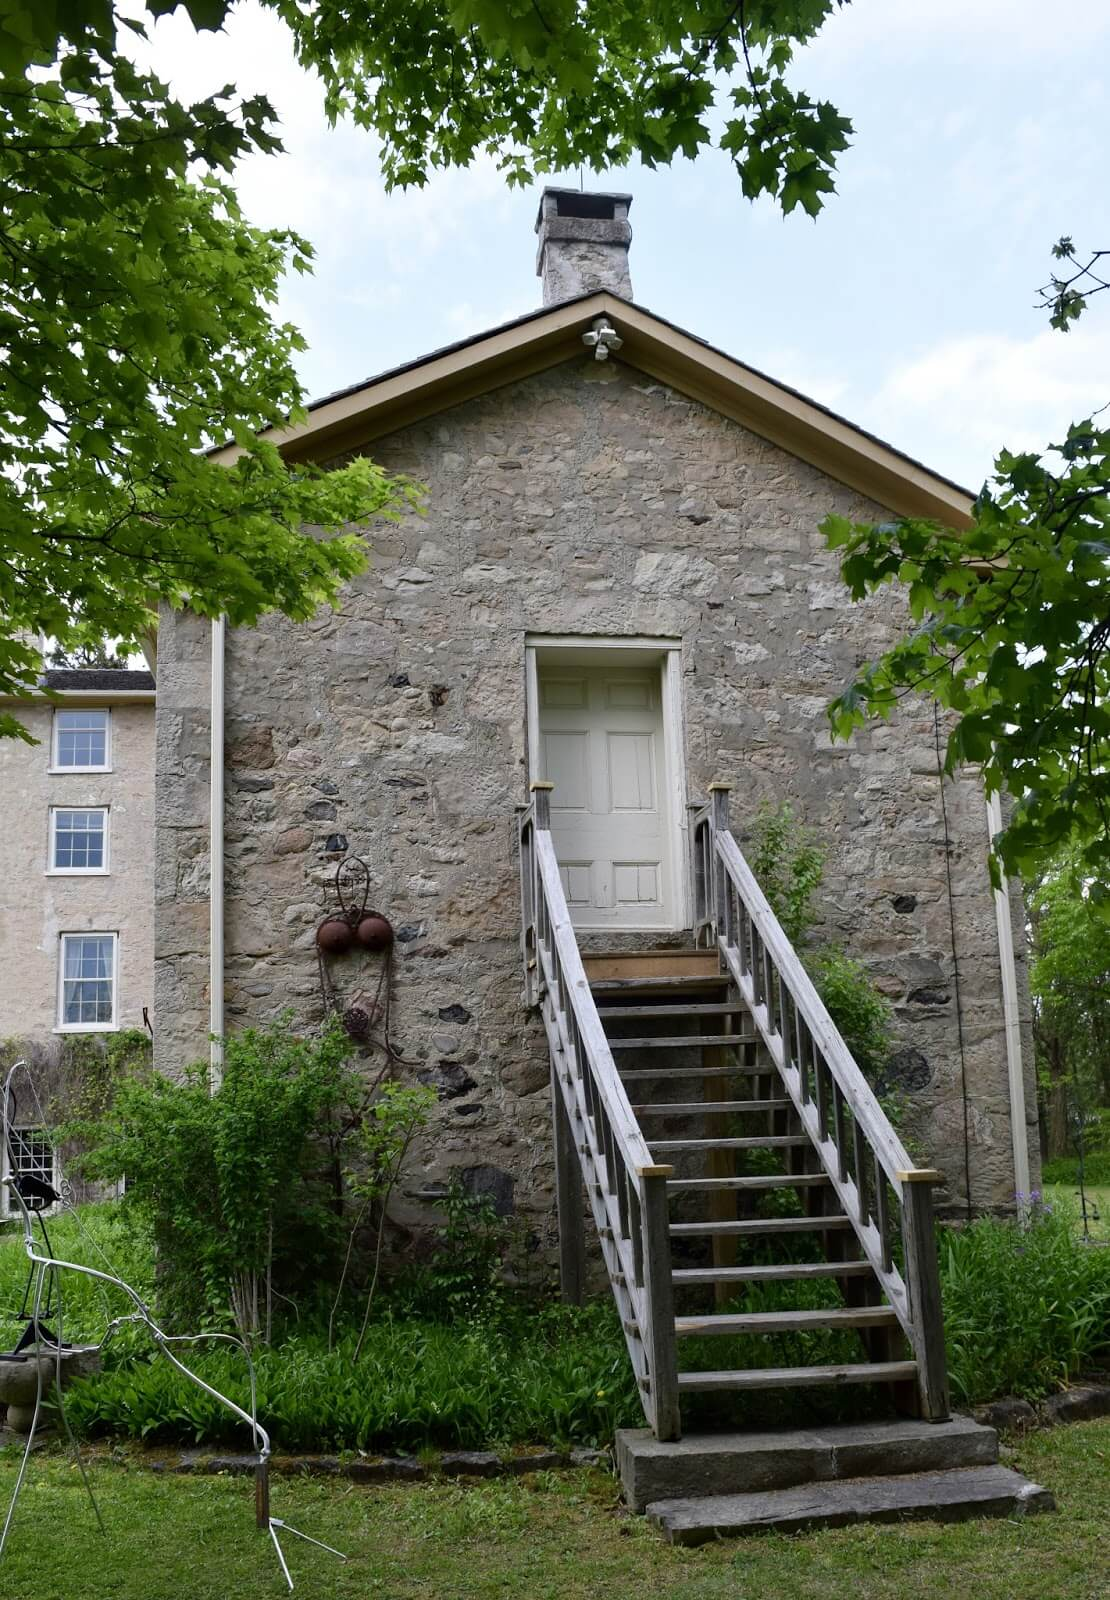 A rear perspective of the gynasium wing at Rockwod Academy, a historic stone building with staircase leading up to a door